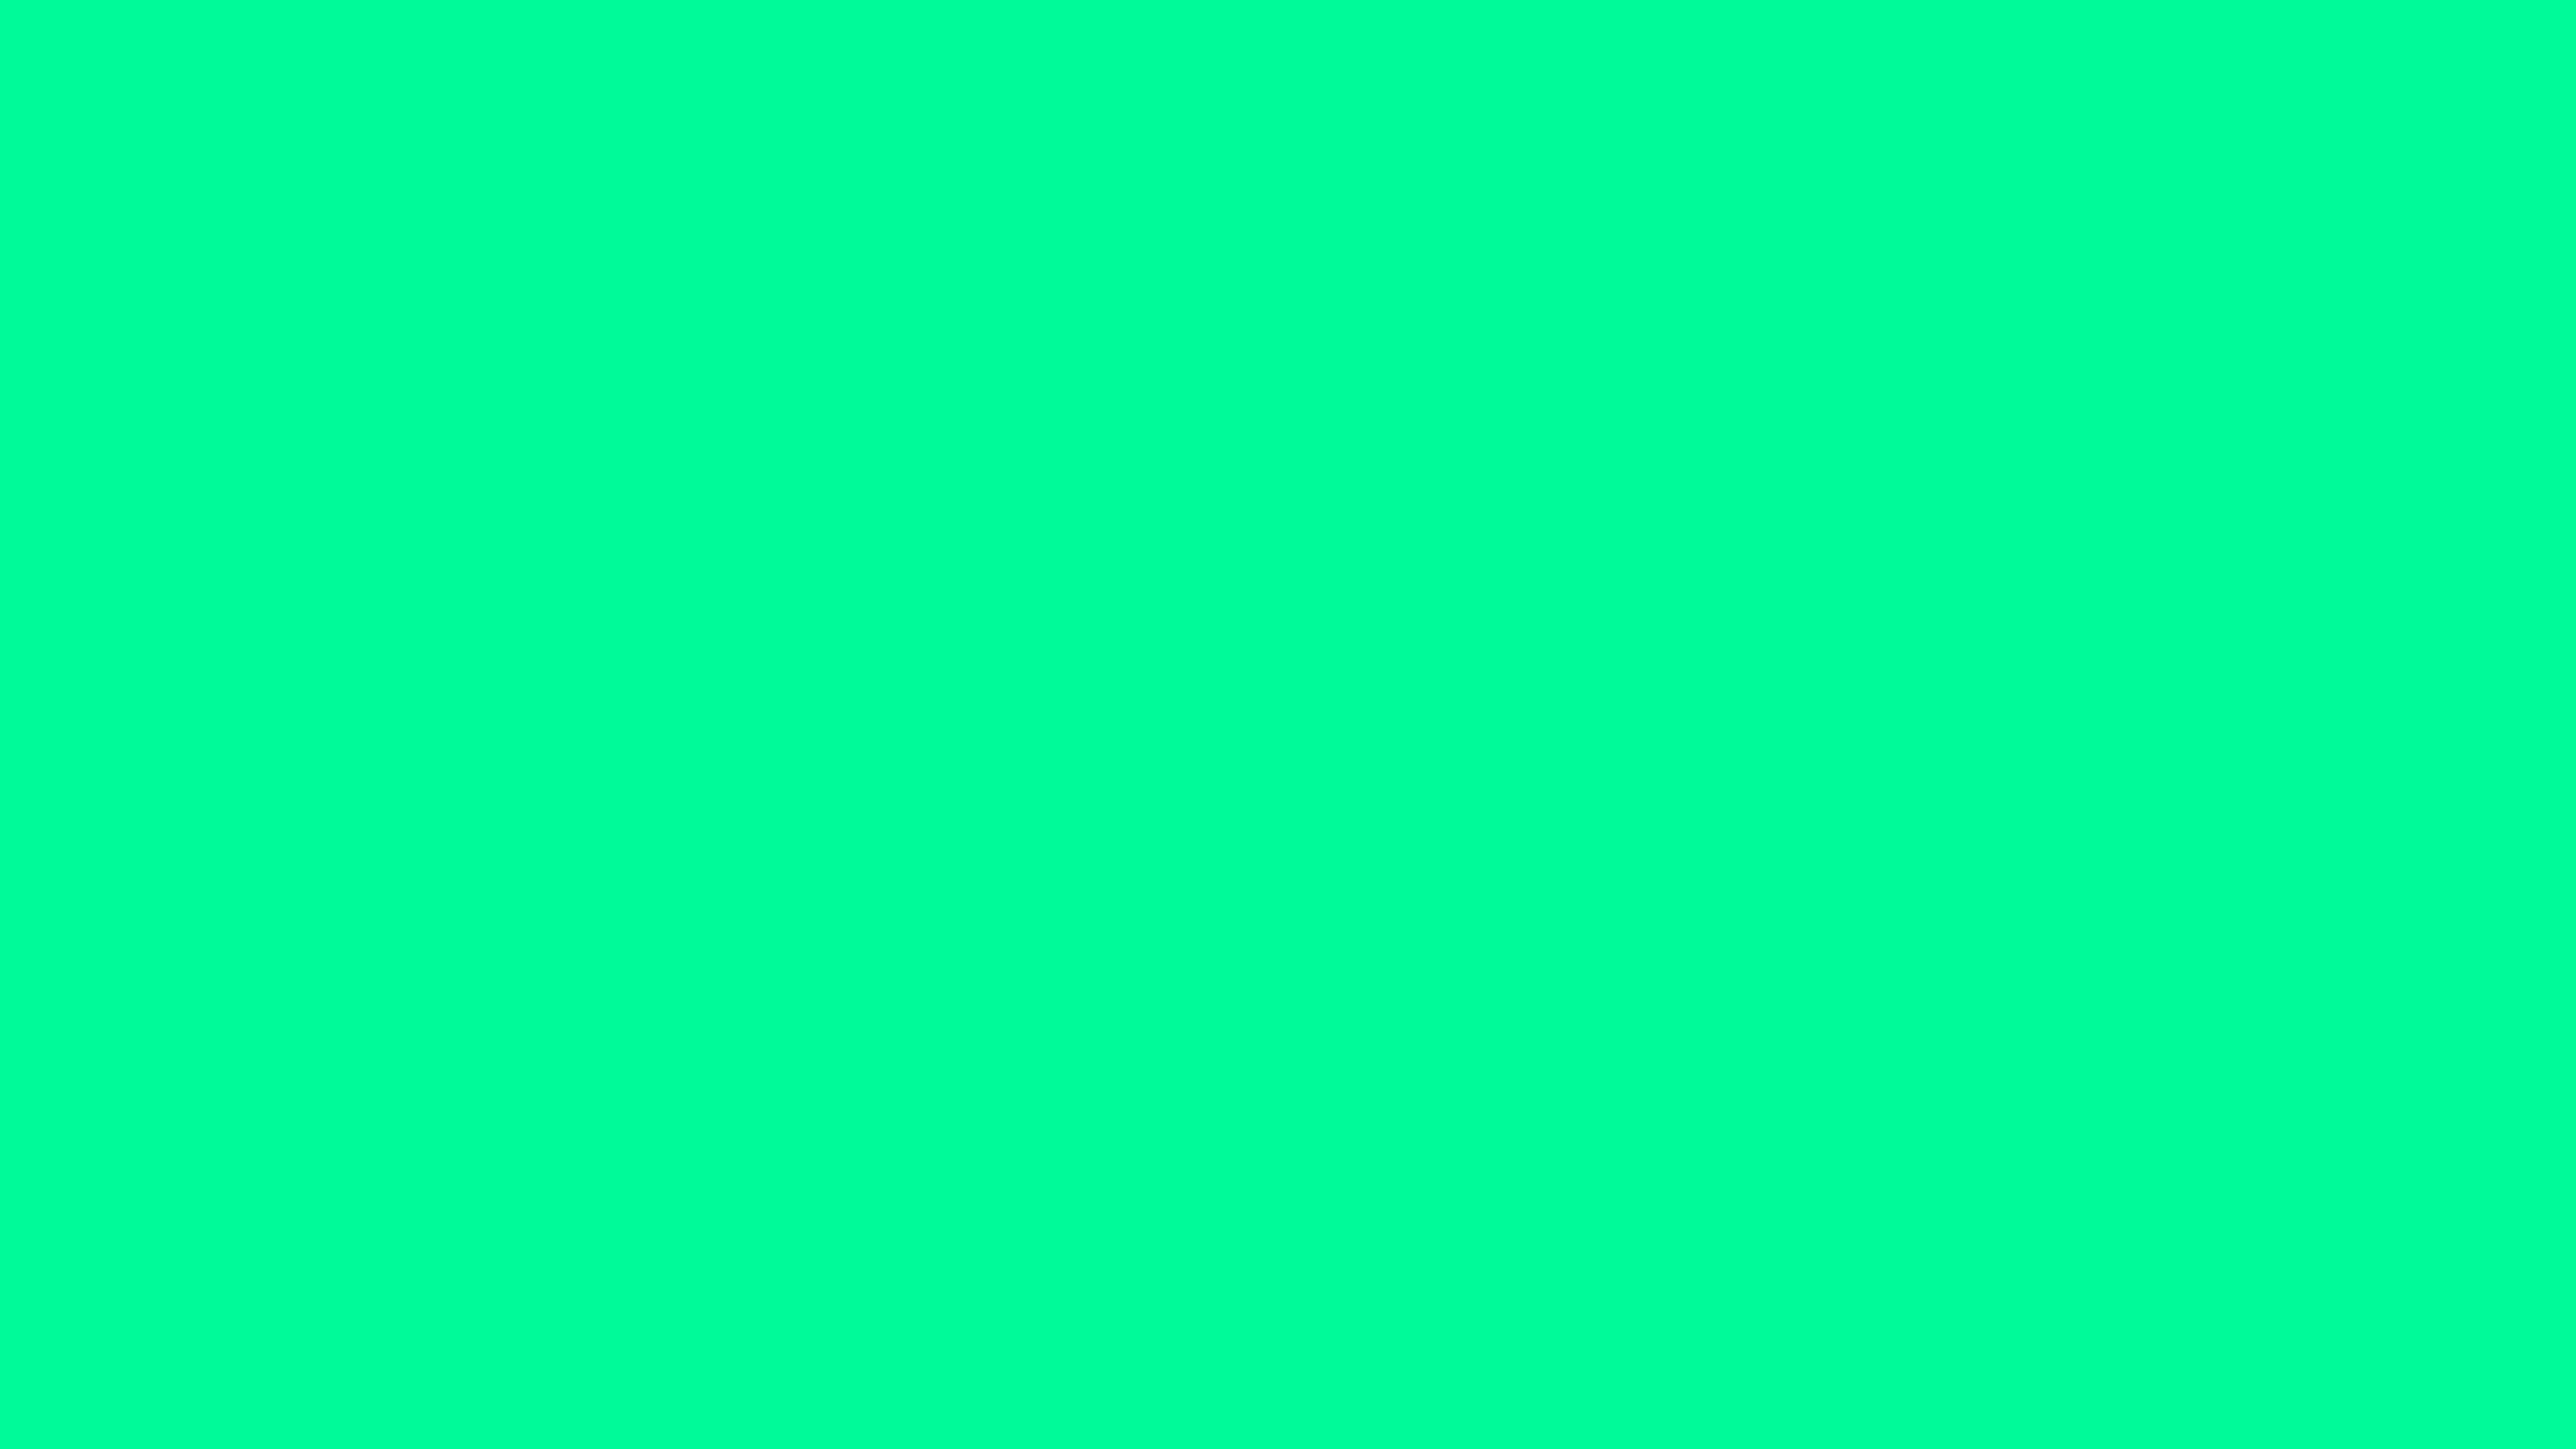 4096x2304 Medium Spring Green Solid Color Background